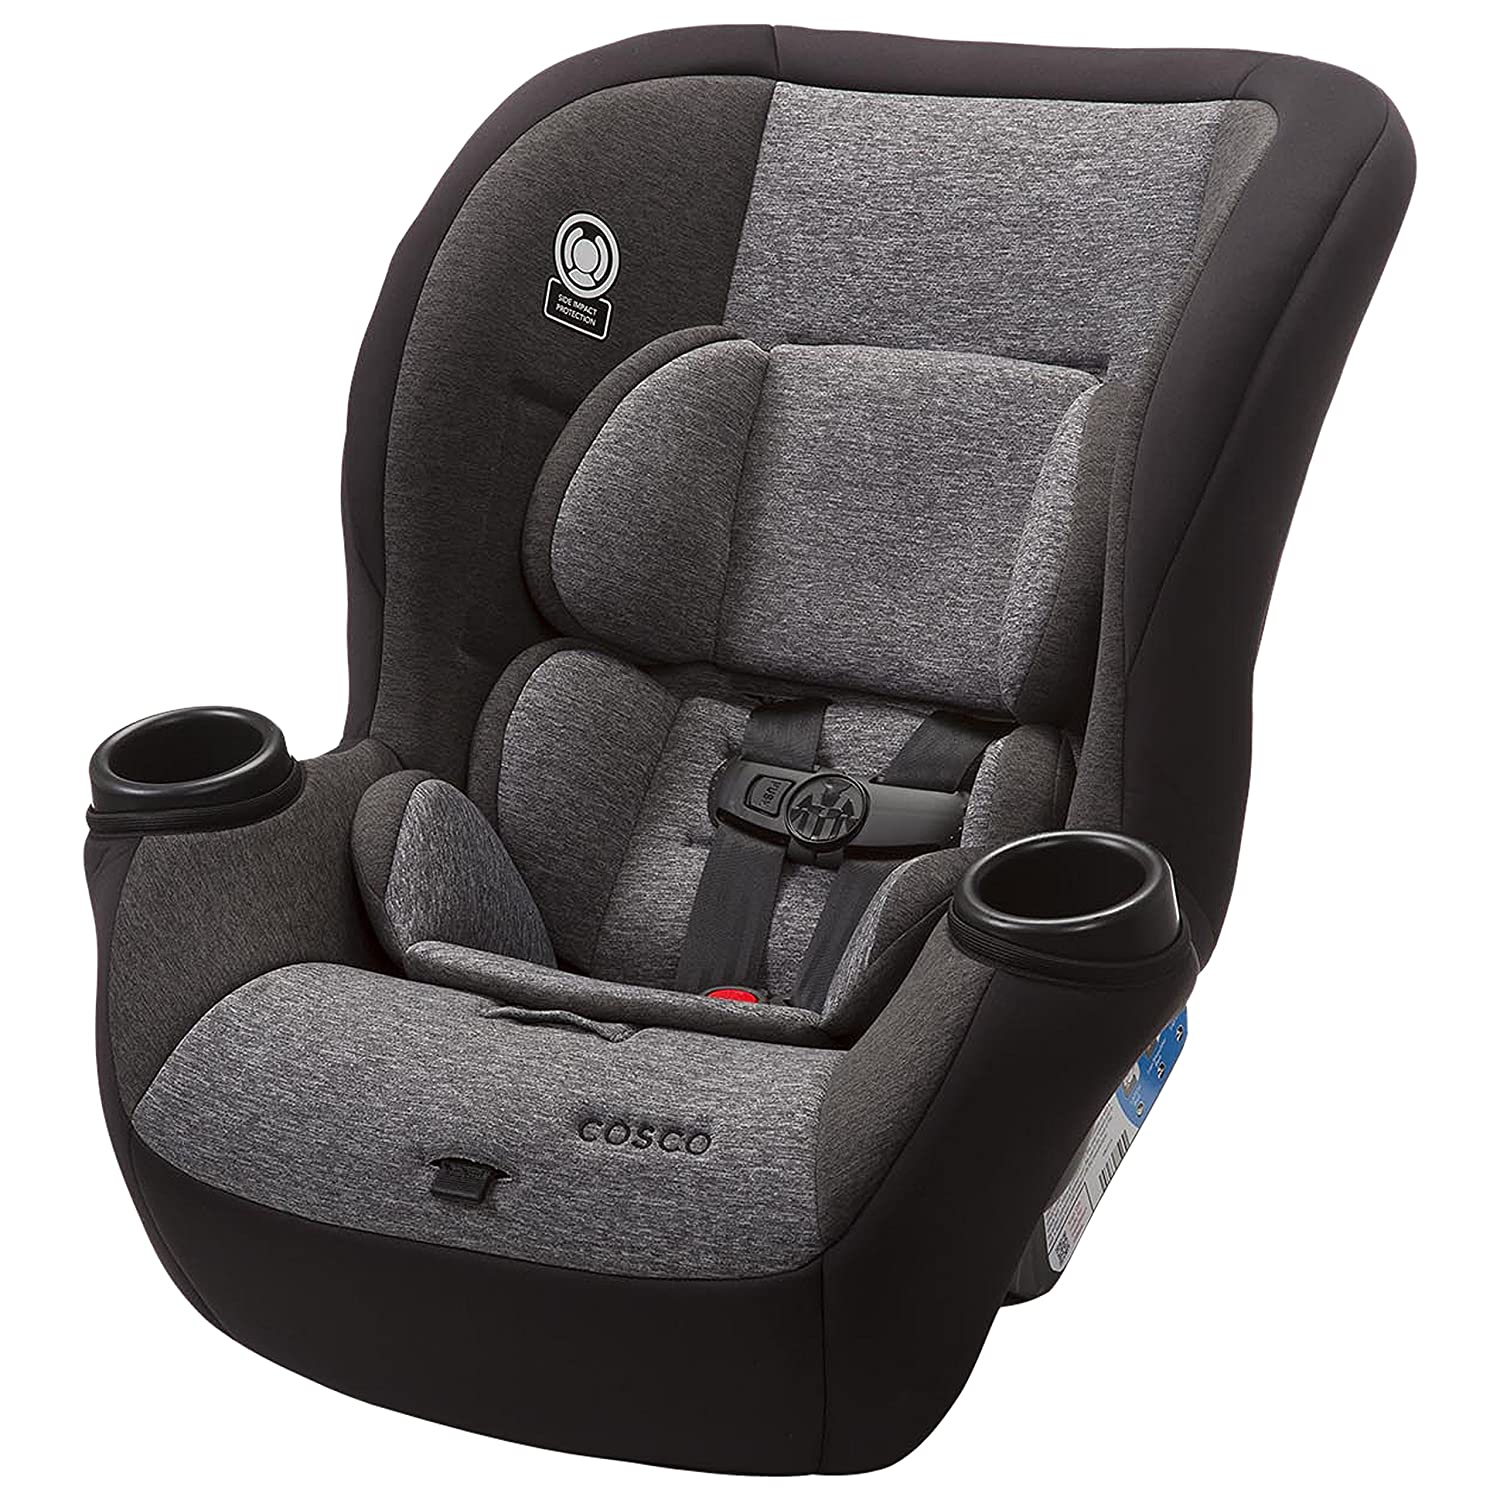 Amazon.com : Cosco Comfy Convertible Car Seat, Heather Granite : Baby